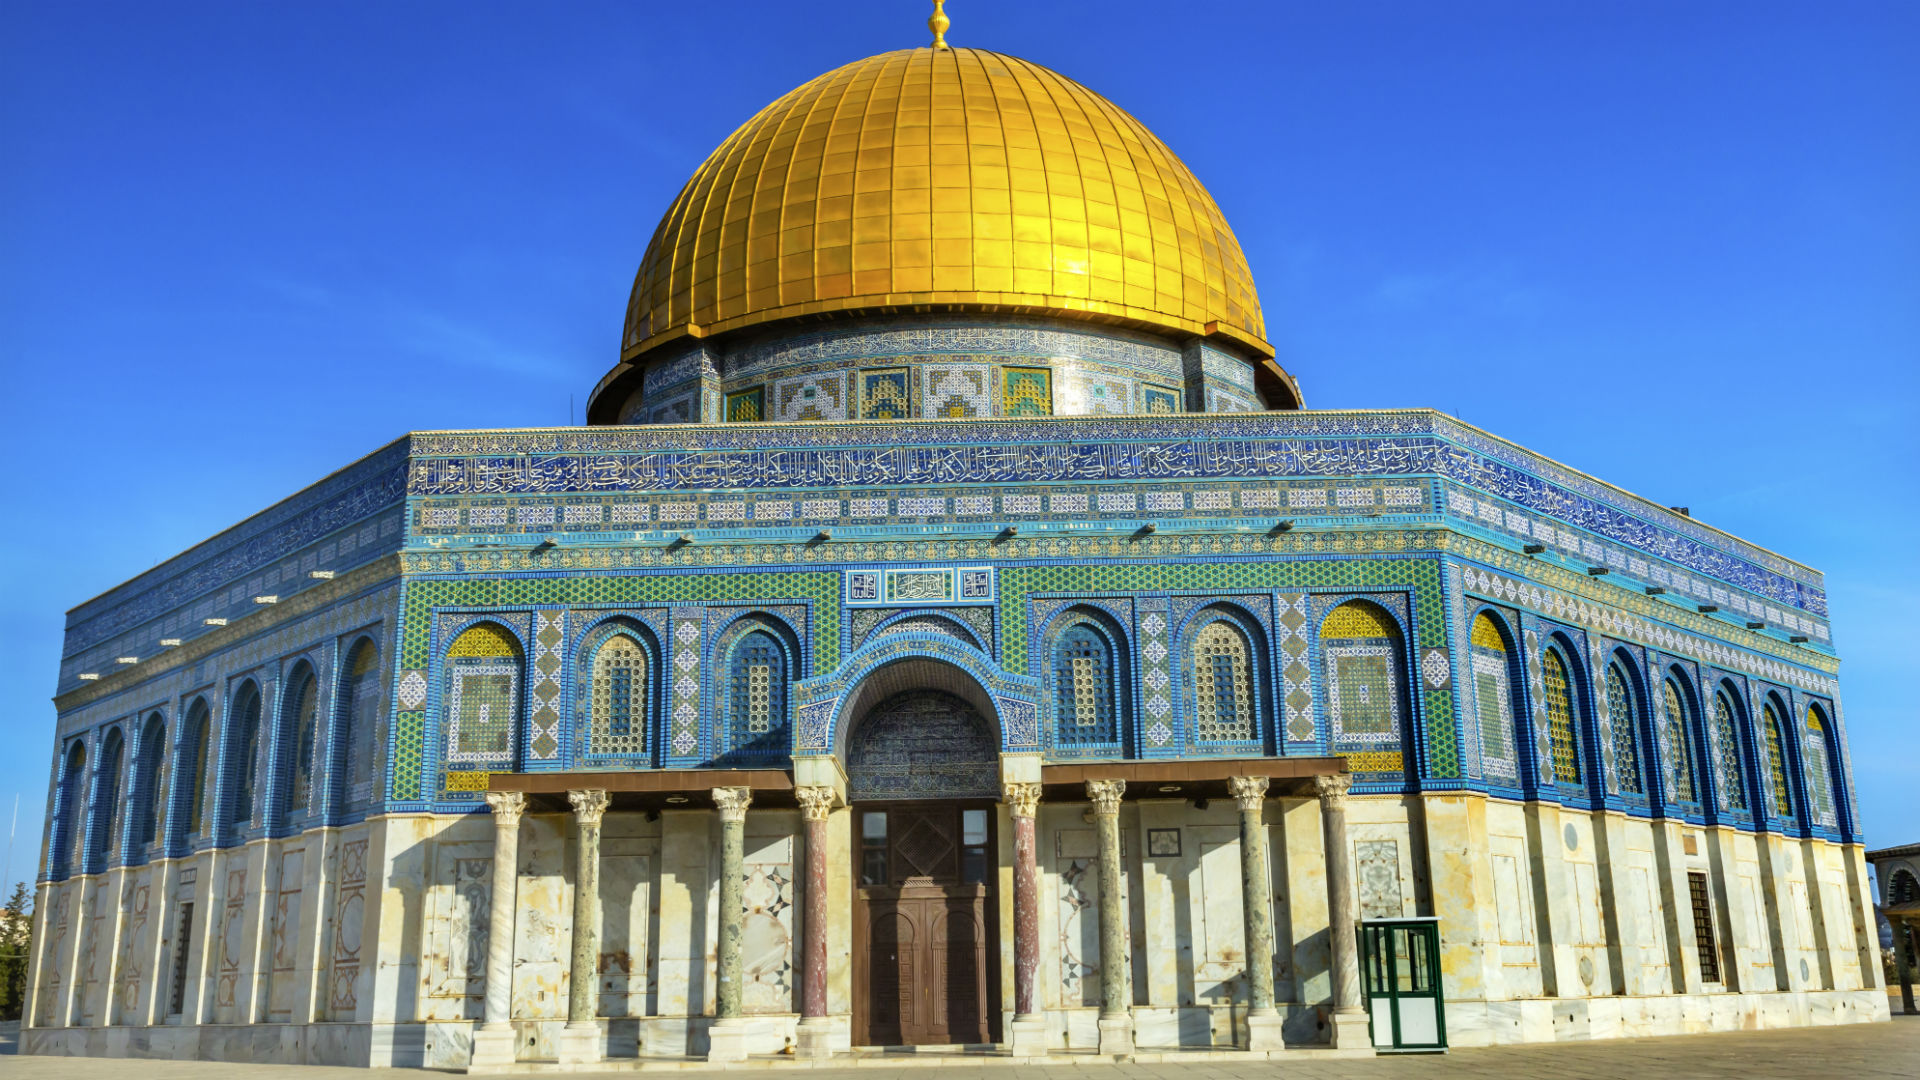 Close-up of the Dome of the Rock in Jerusalem, Israel